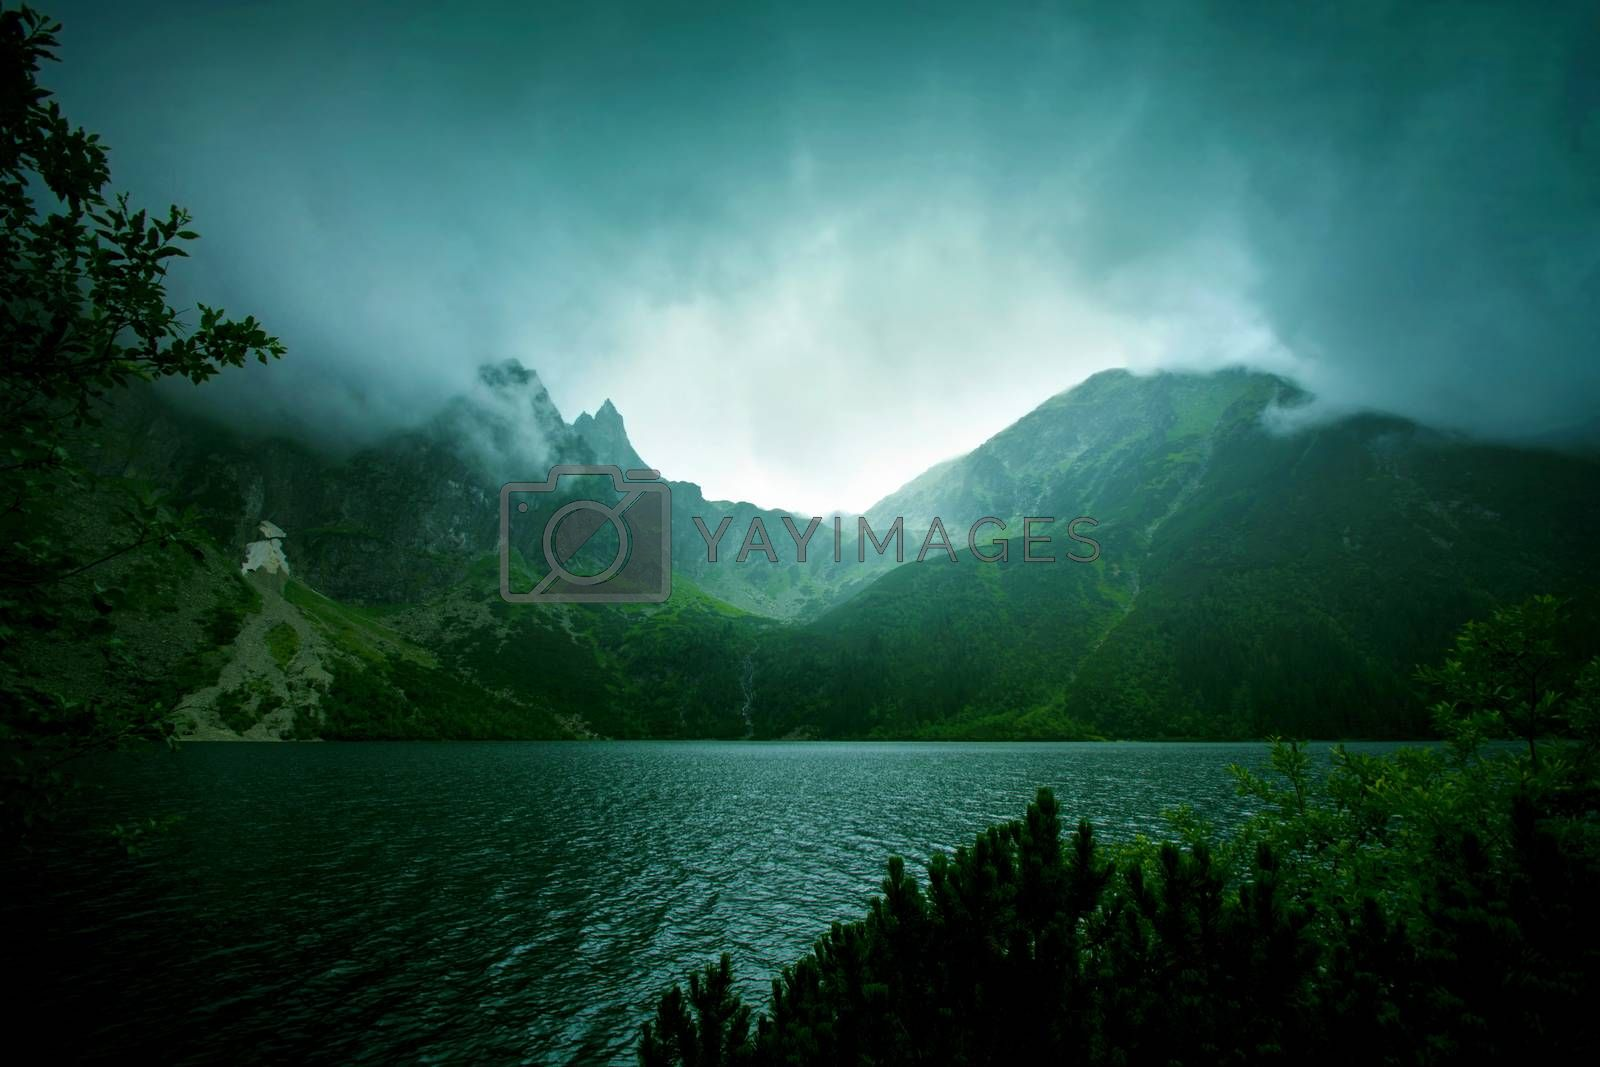 Fog and dark clouds in mountains. Lake in mountains.